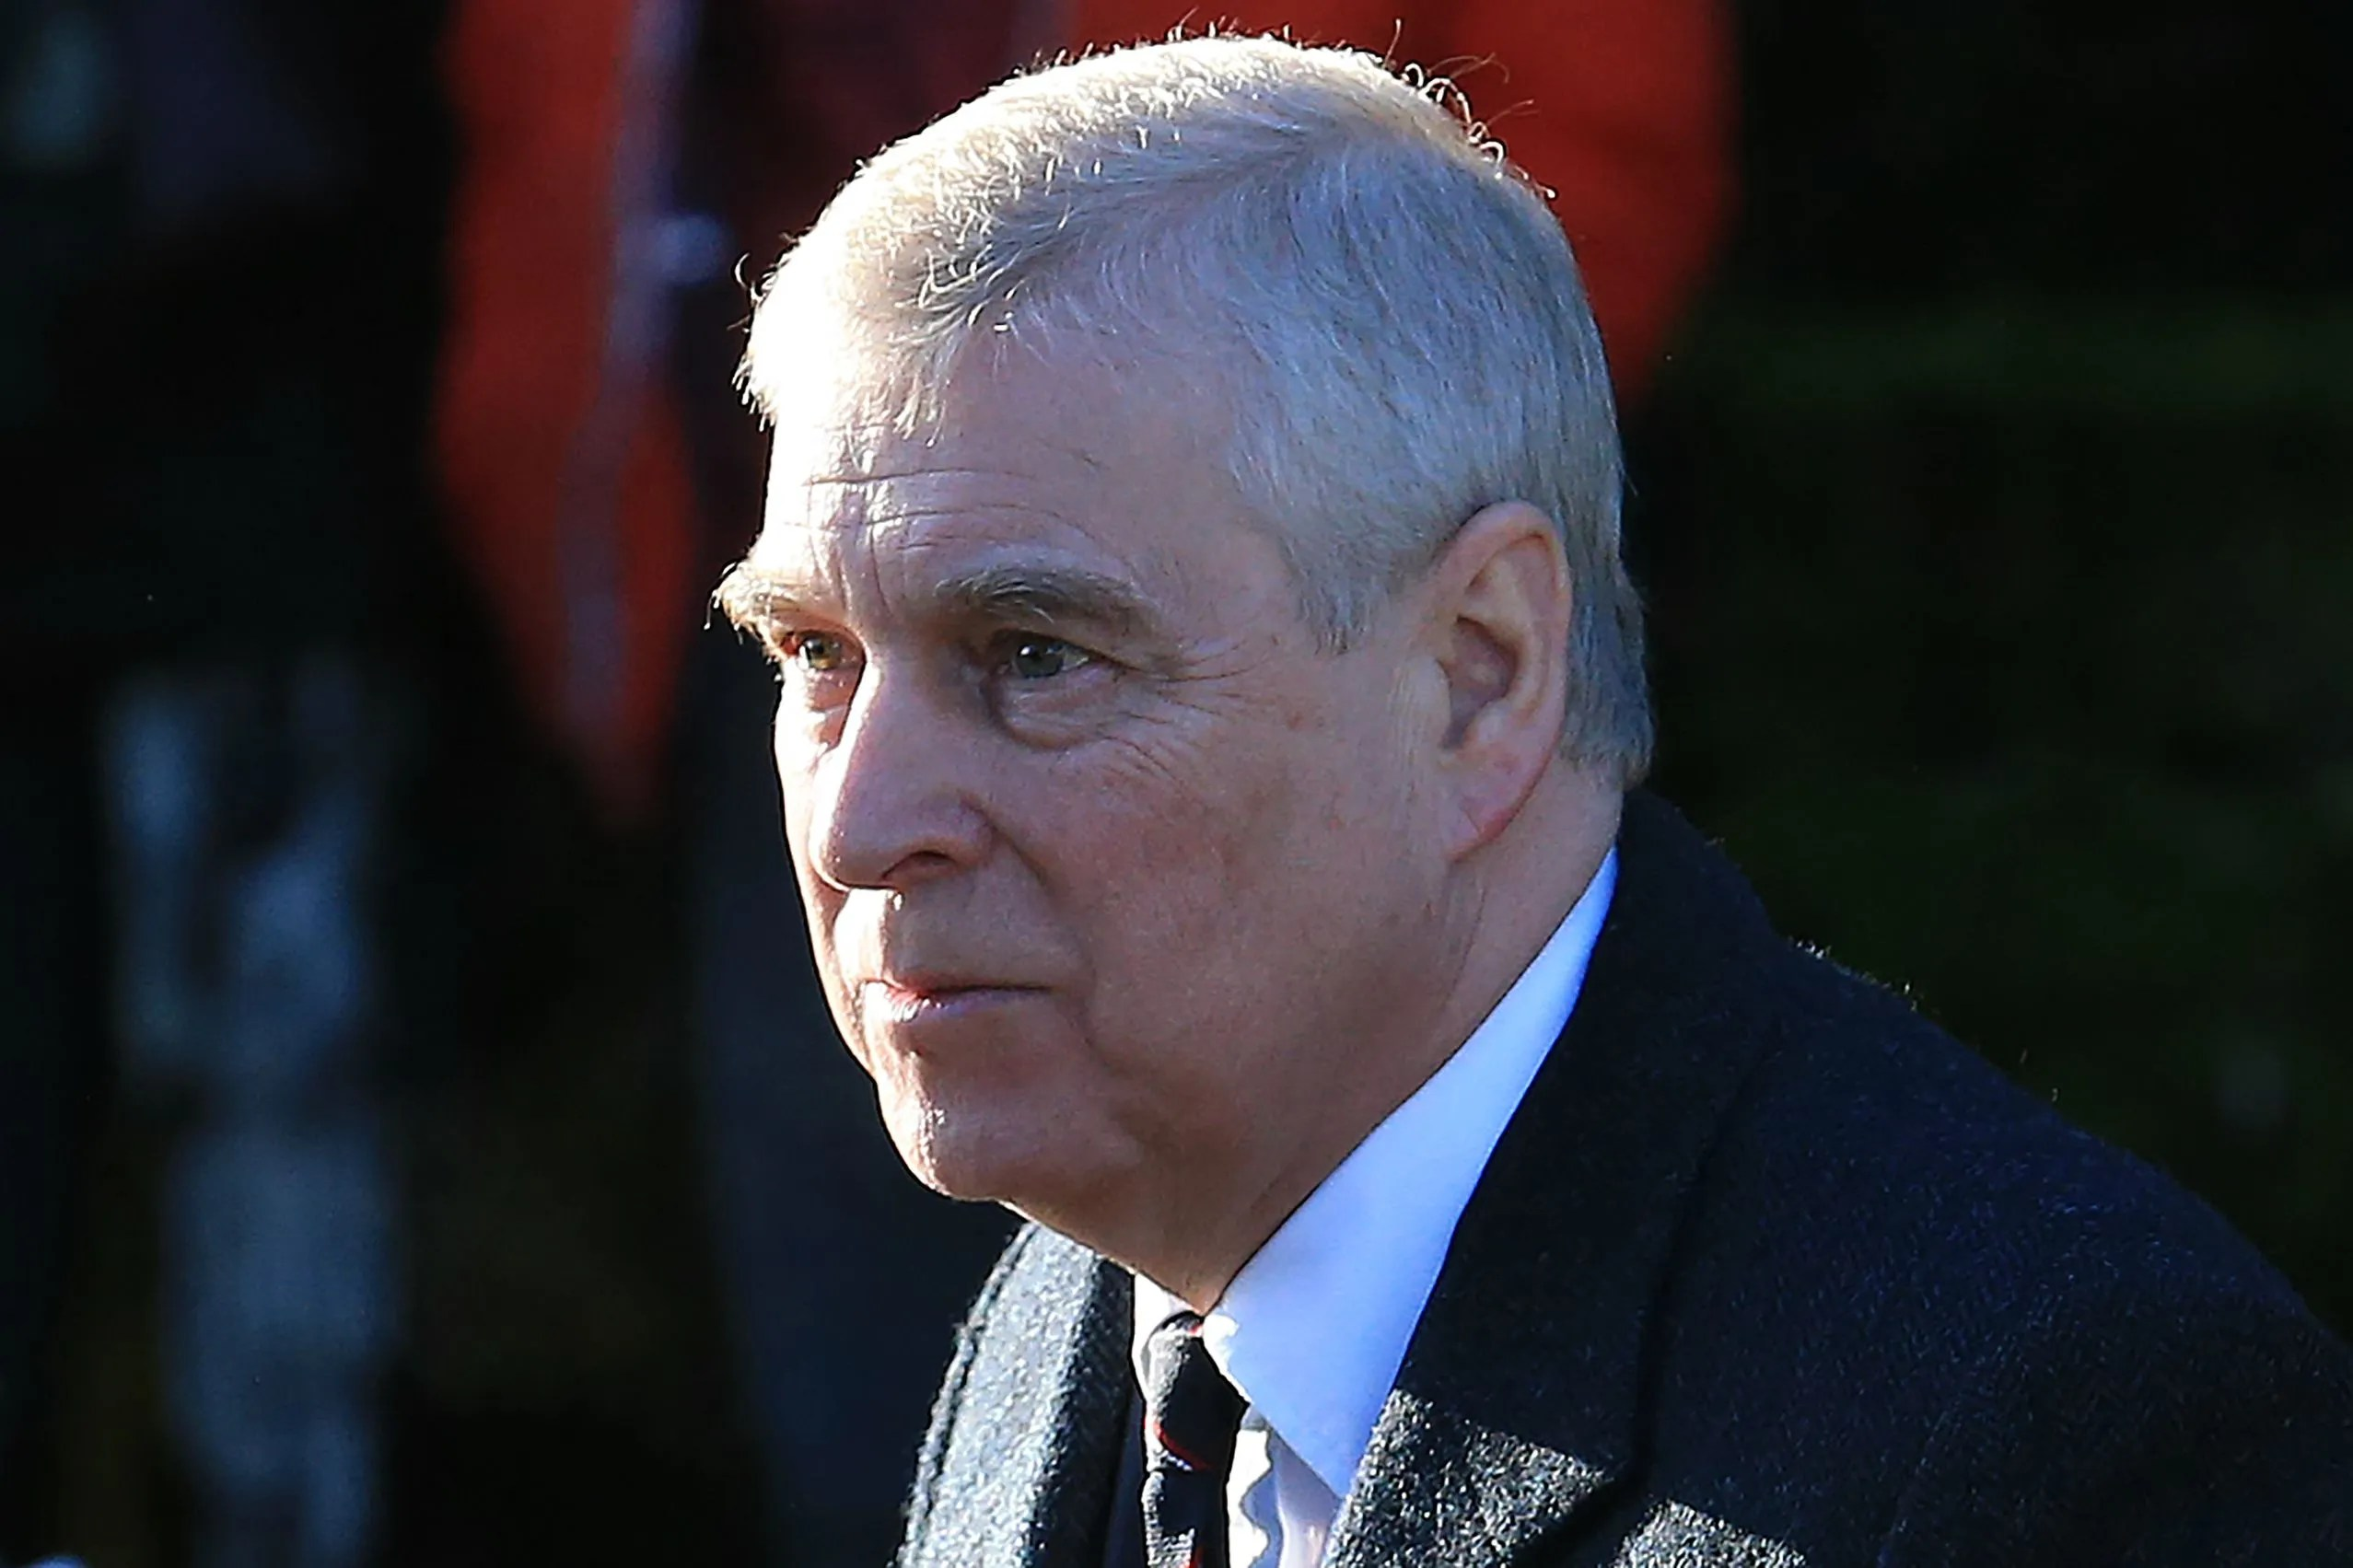 Prince Andrew in January 2020, arriving at a church service in Norfolk, in eastern England.